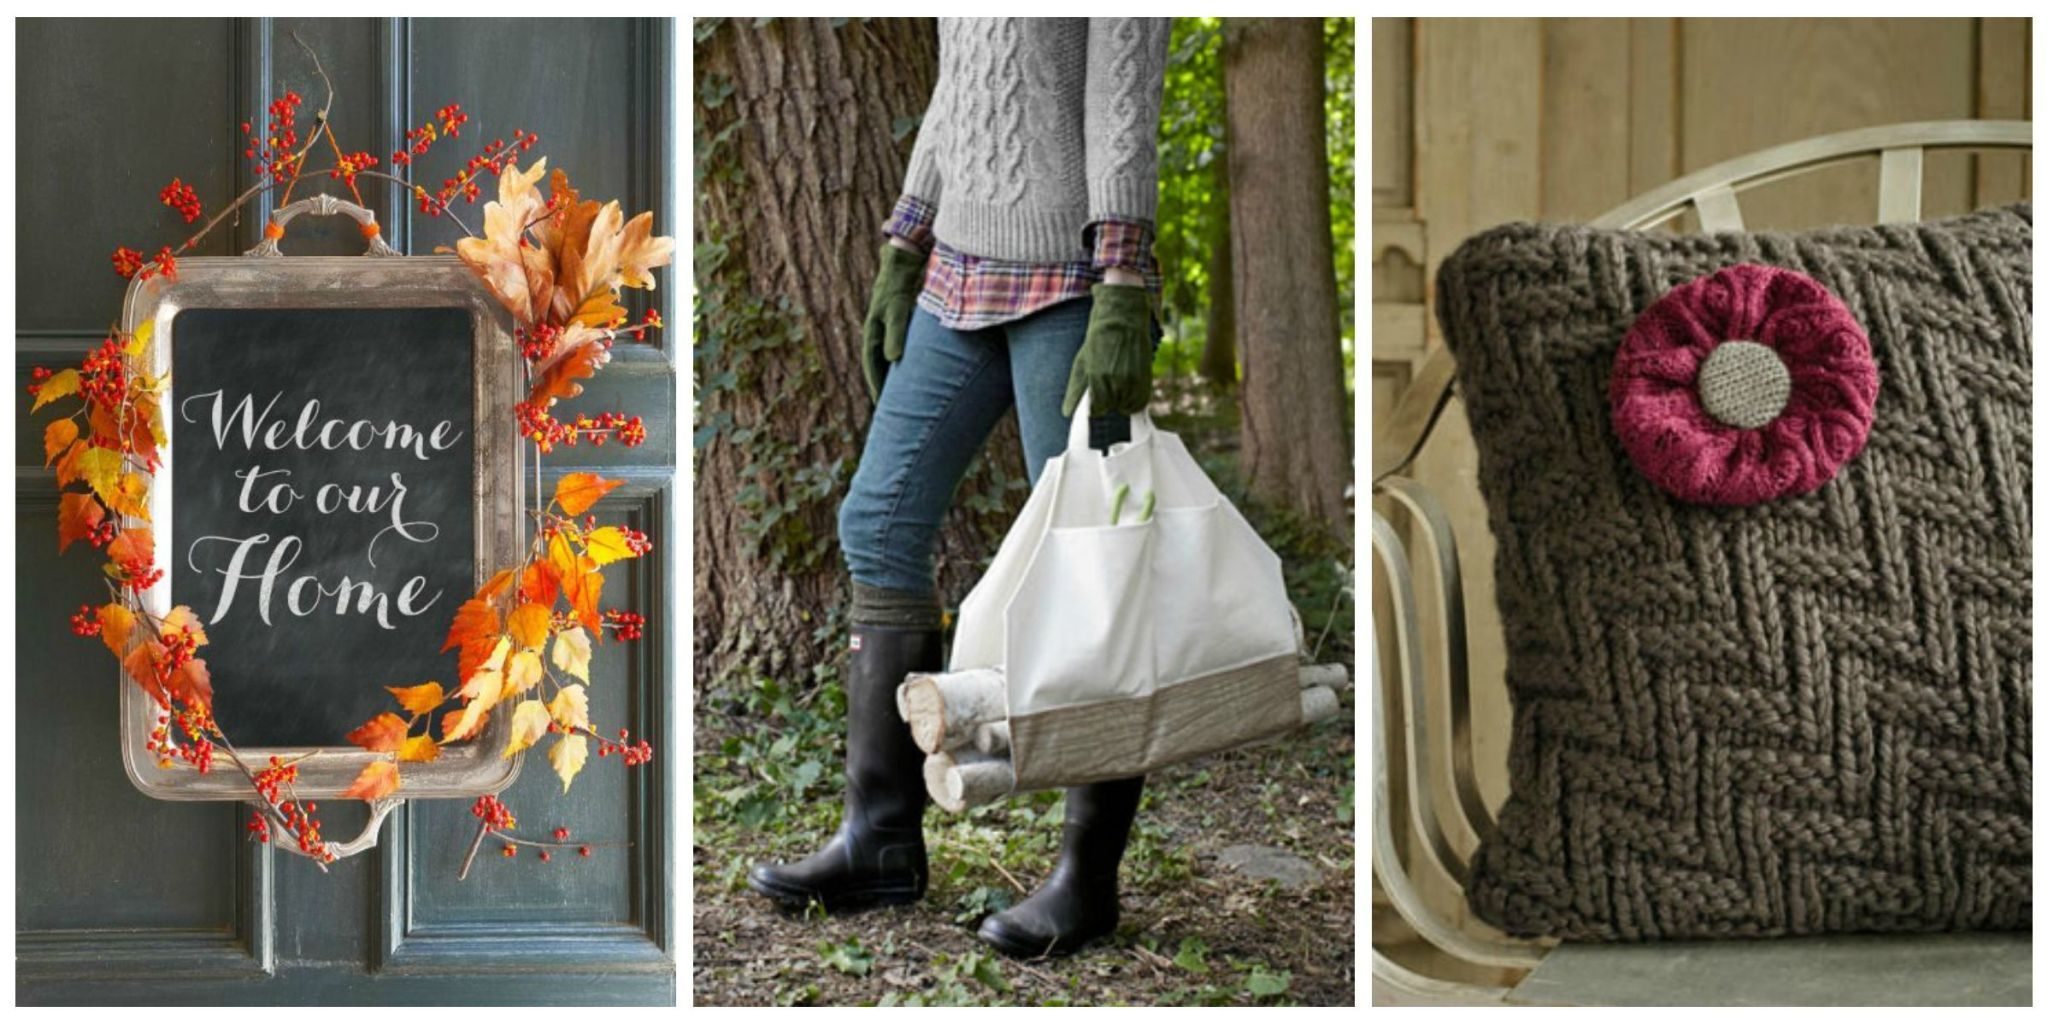 Fashion Your Home For Fall With These Easy DIYs, Perfect For Cooler Weather.